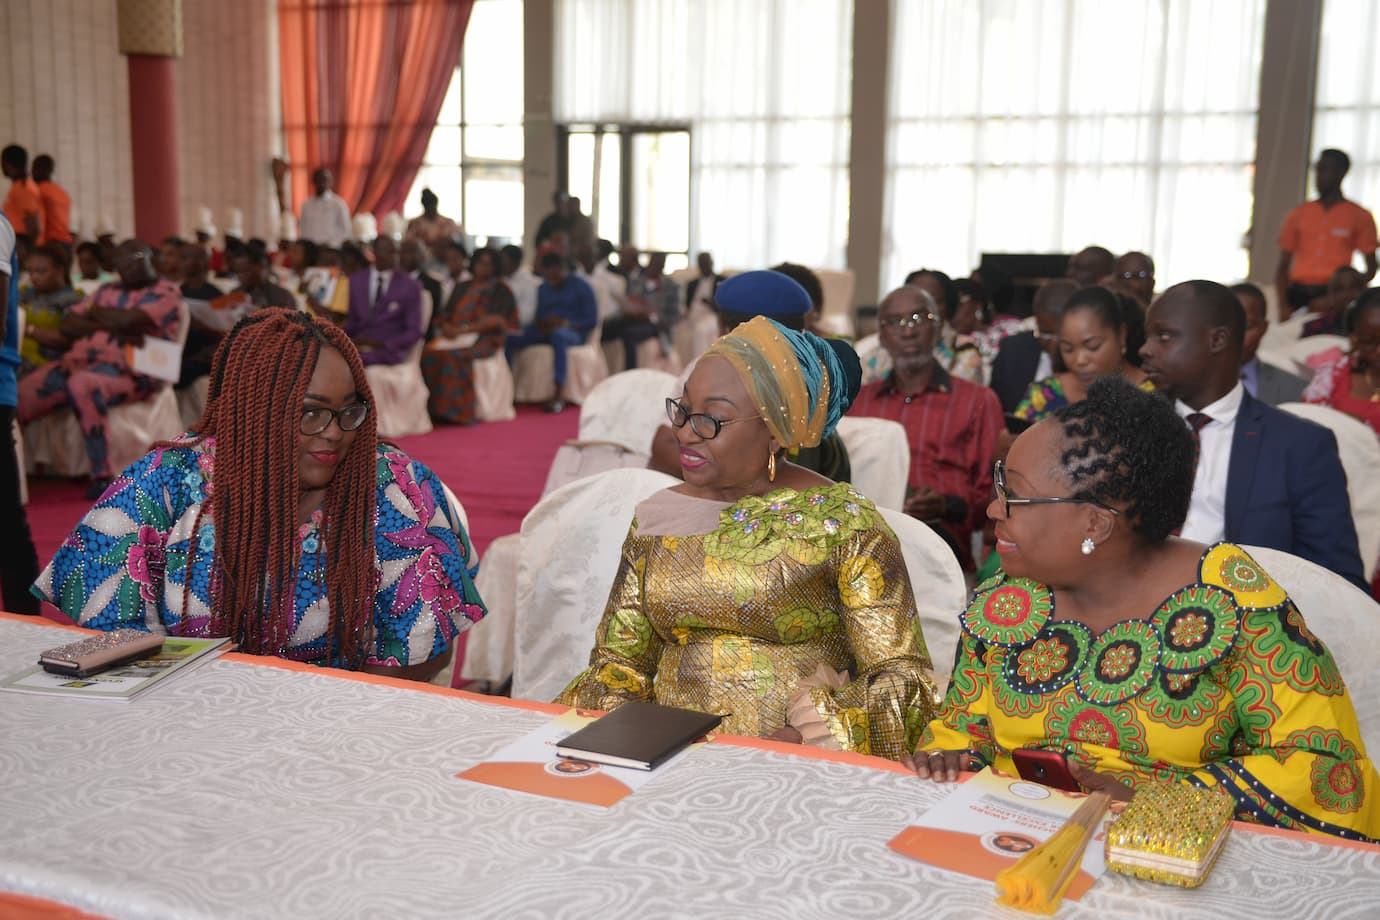 L to R Chairperson Mrs Emem Isong Misodi, Guest Speaker The Head of the Civil Service of the Federation Mrs. Winifred Oyoita